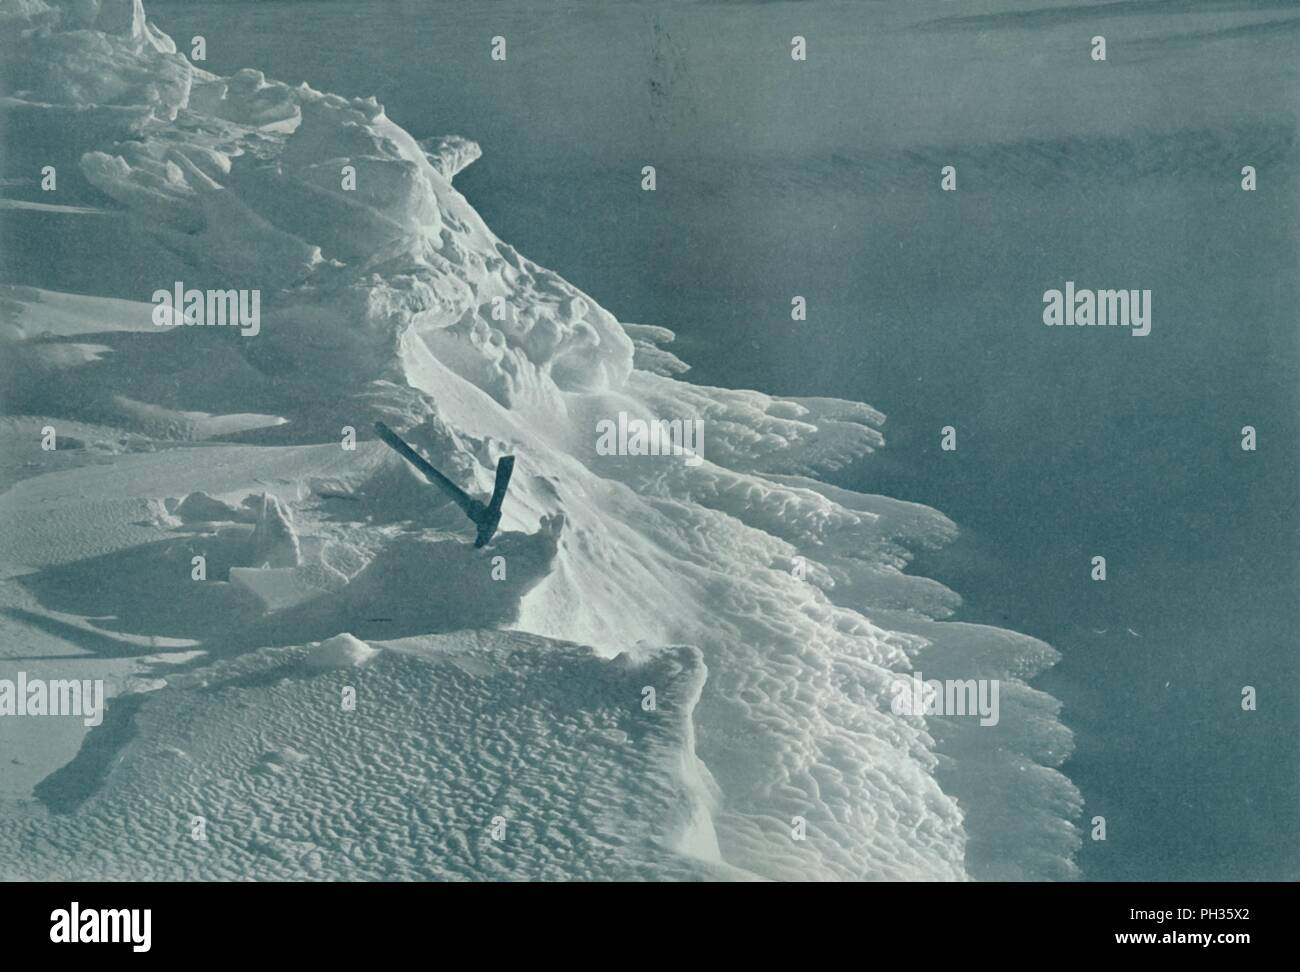 'Growing Ice-Foot, Cape Evans', c1911, (1913). The final expedition of British Antarctic explorer Captain Robert Falcon Scott (1868-1912) left London on 1 June 1910 bound for the South Pole. The Terra Nova Expedition, officially the British Antarctic Expedition (1910-1913), included a geologist, a zoologist, a surgeon, a photographer, an engineer, a ski expert, a meteorologist and a physicist among others. Scott wished to continue the scientific work that he had begun when leading the Discovery Expedition to the Antarctic in 1901-04. He also wanted to be the first to reach the geographic South - Stock Image